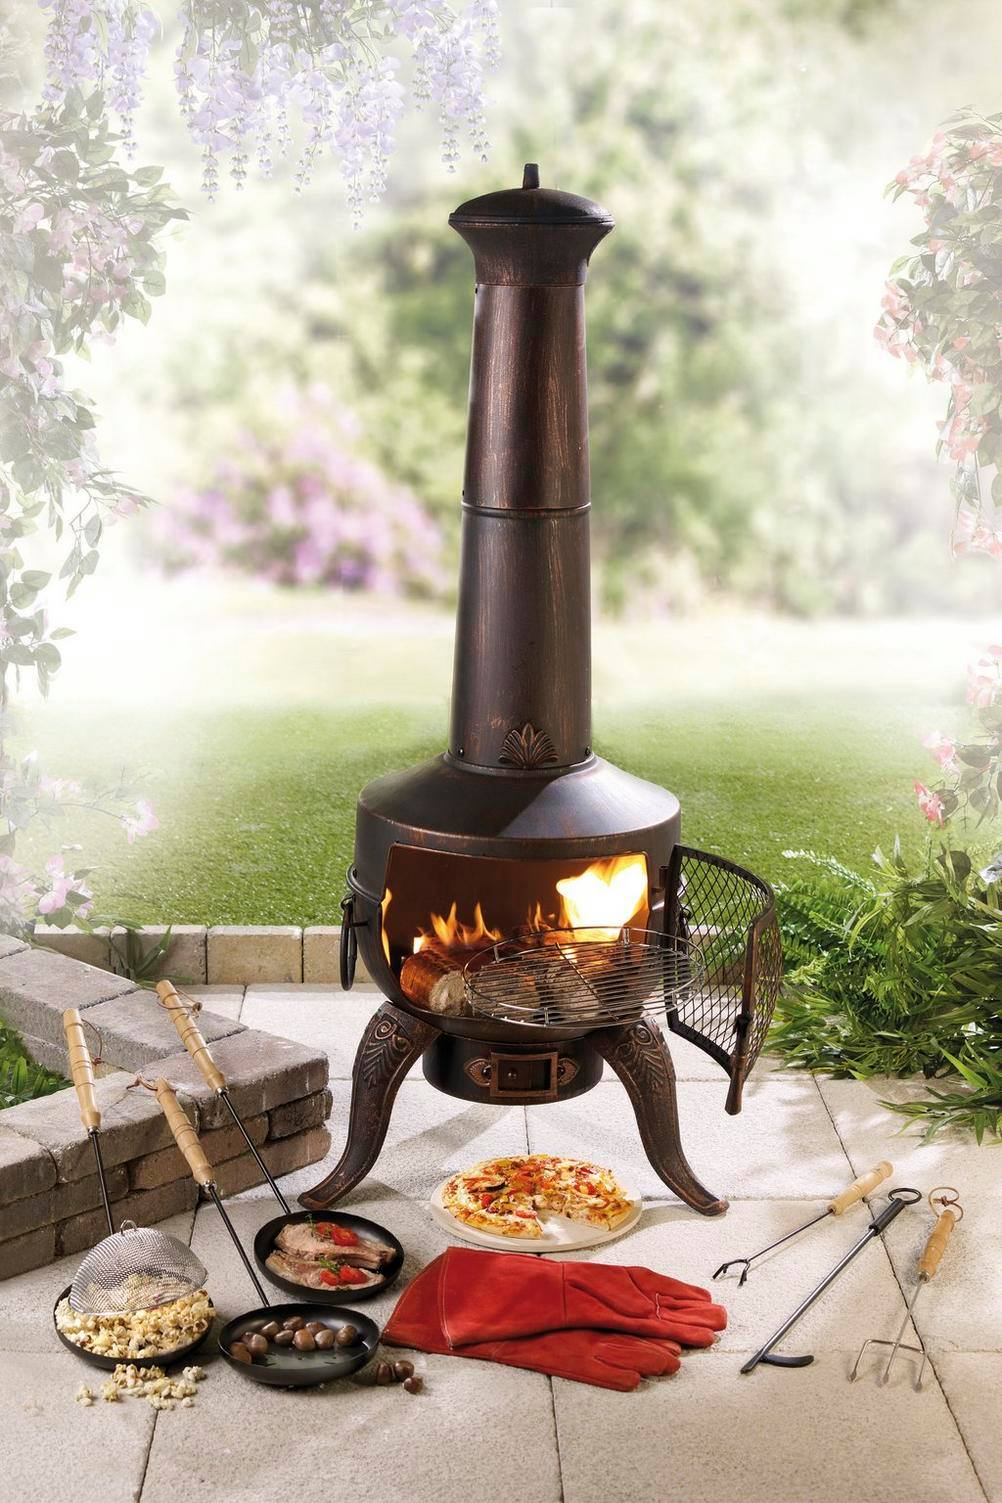 chiminea cooking